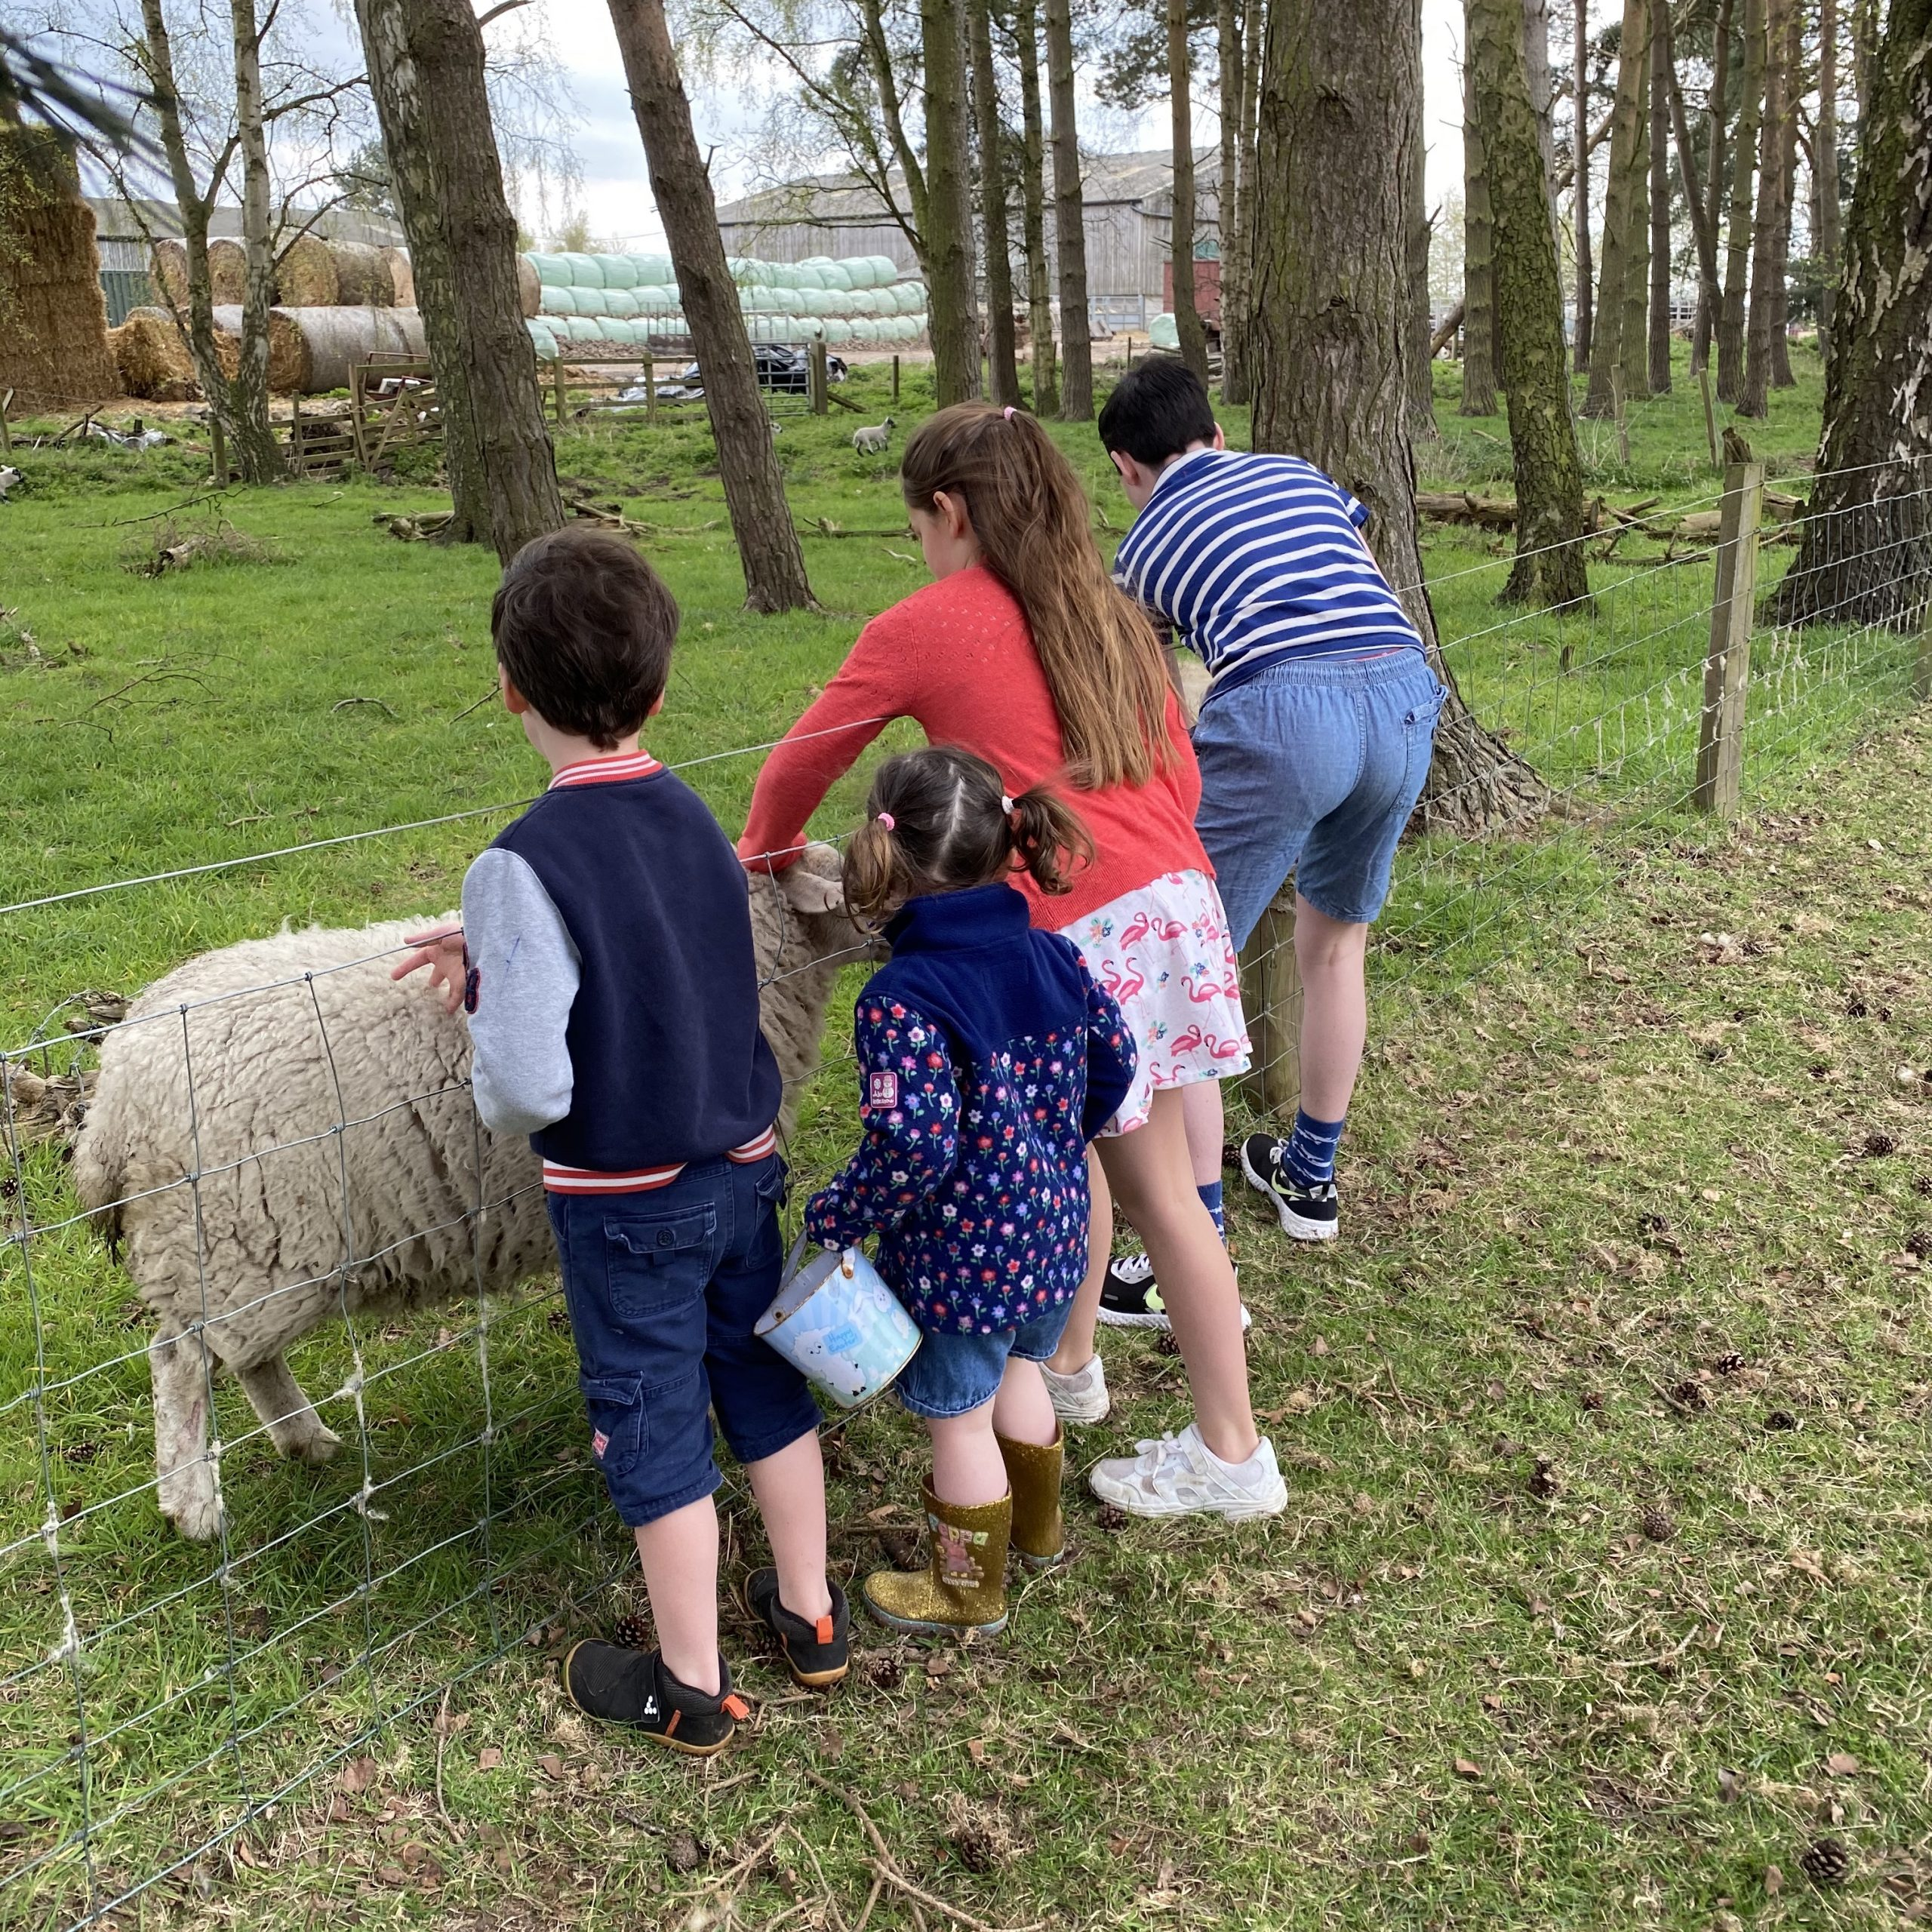 Easter lockdown with. family petting a sheep on a walk